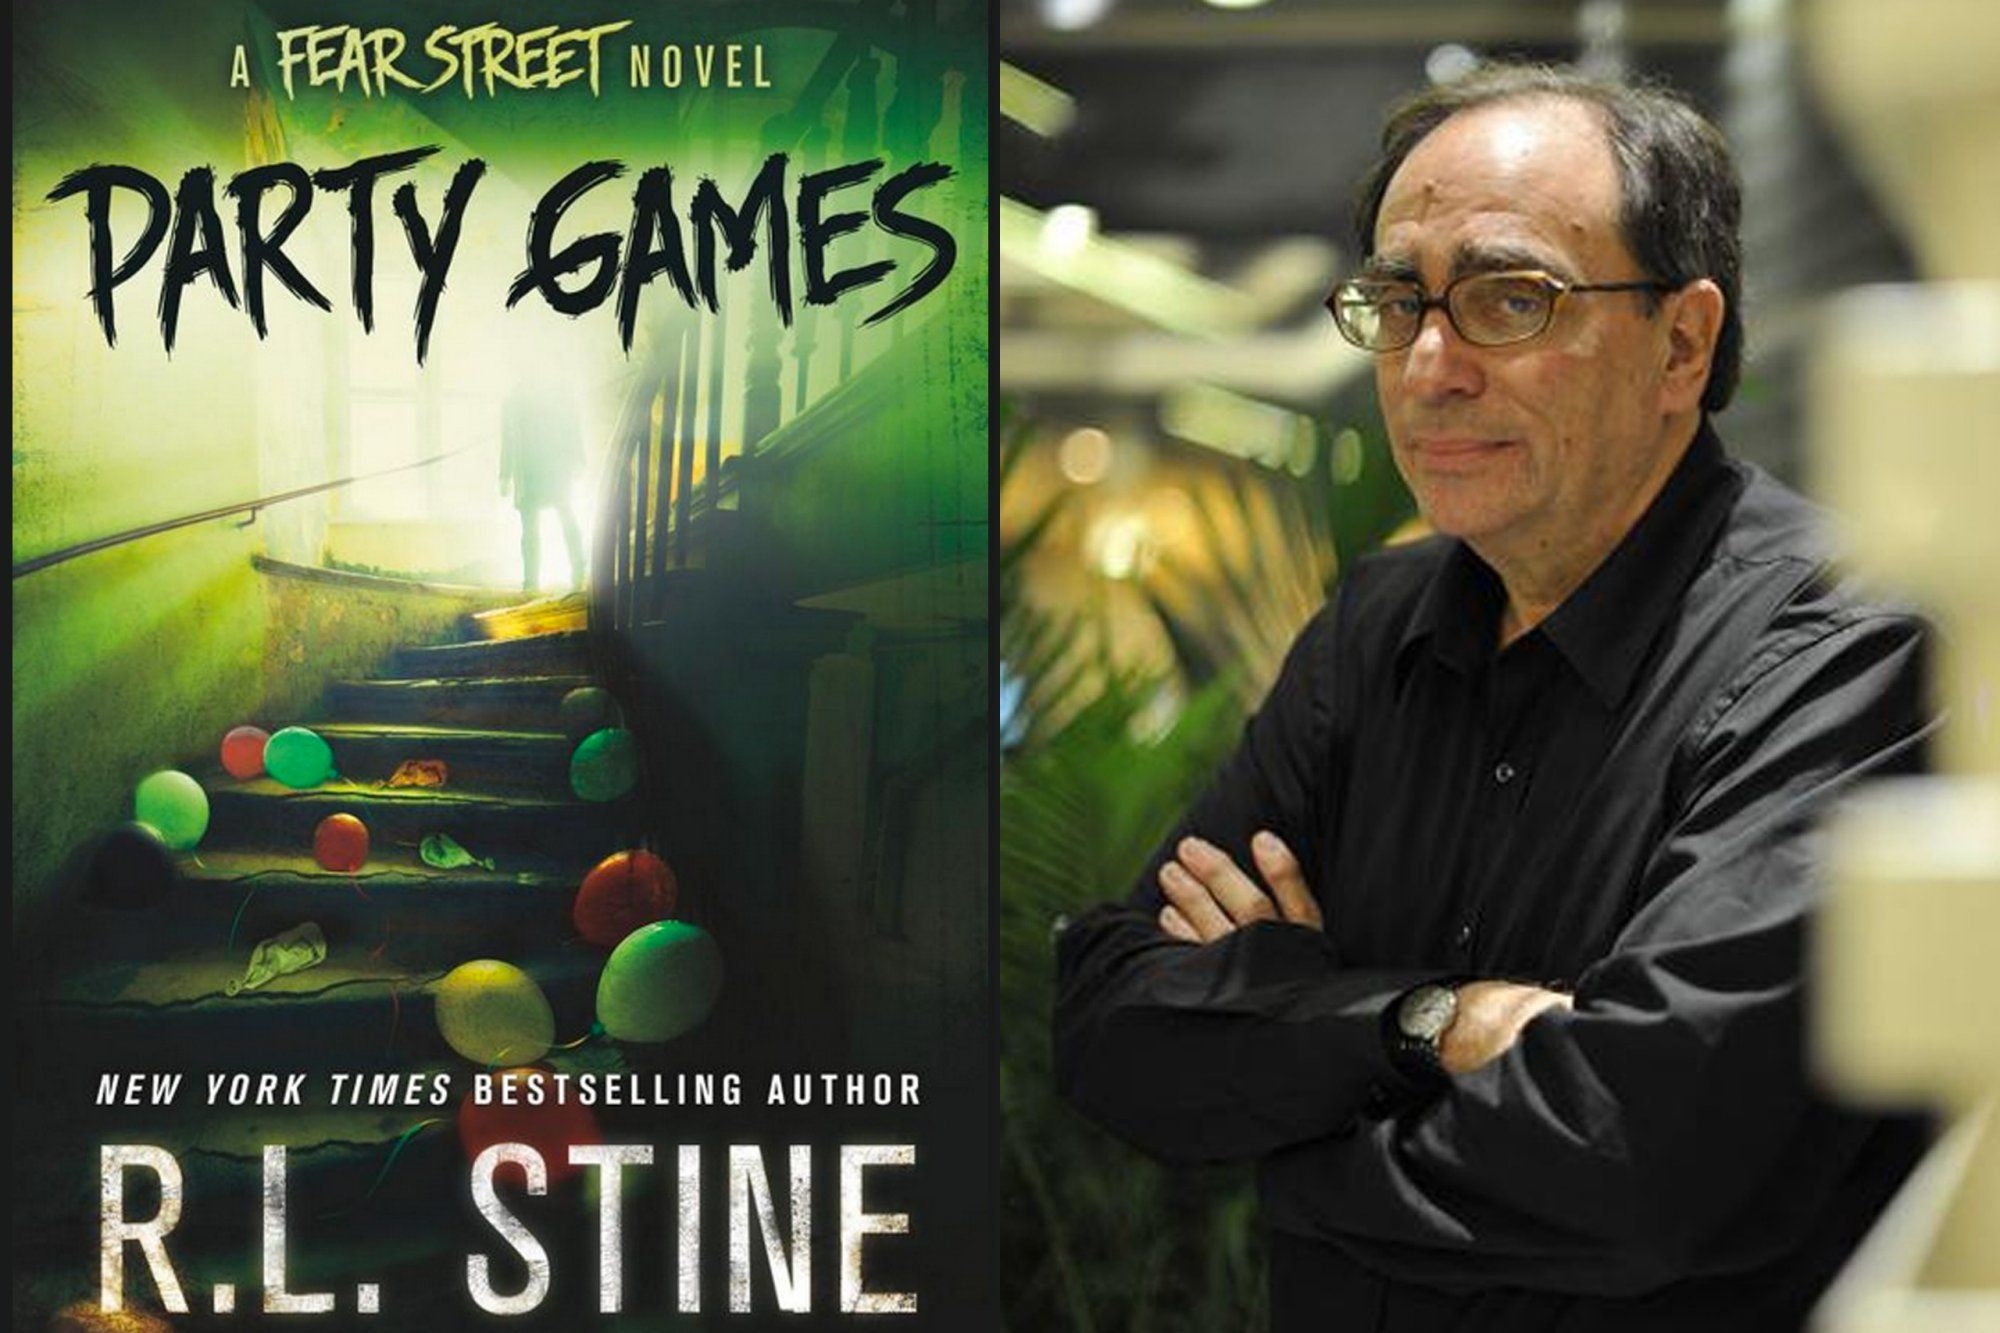 He got kids obsessed with reading because they couldn't put his terrifying books down. Two decades later, 'Goosebumps' author R.L. Stine shares his scare tactics.